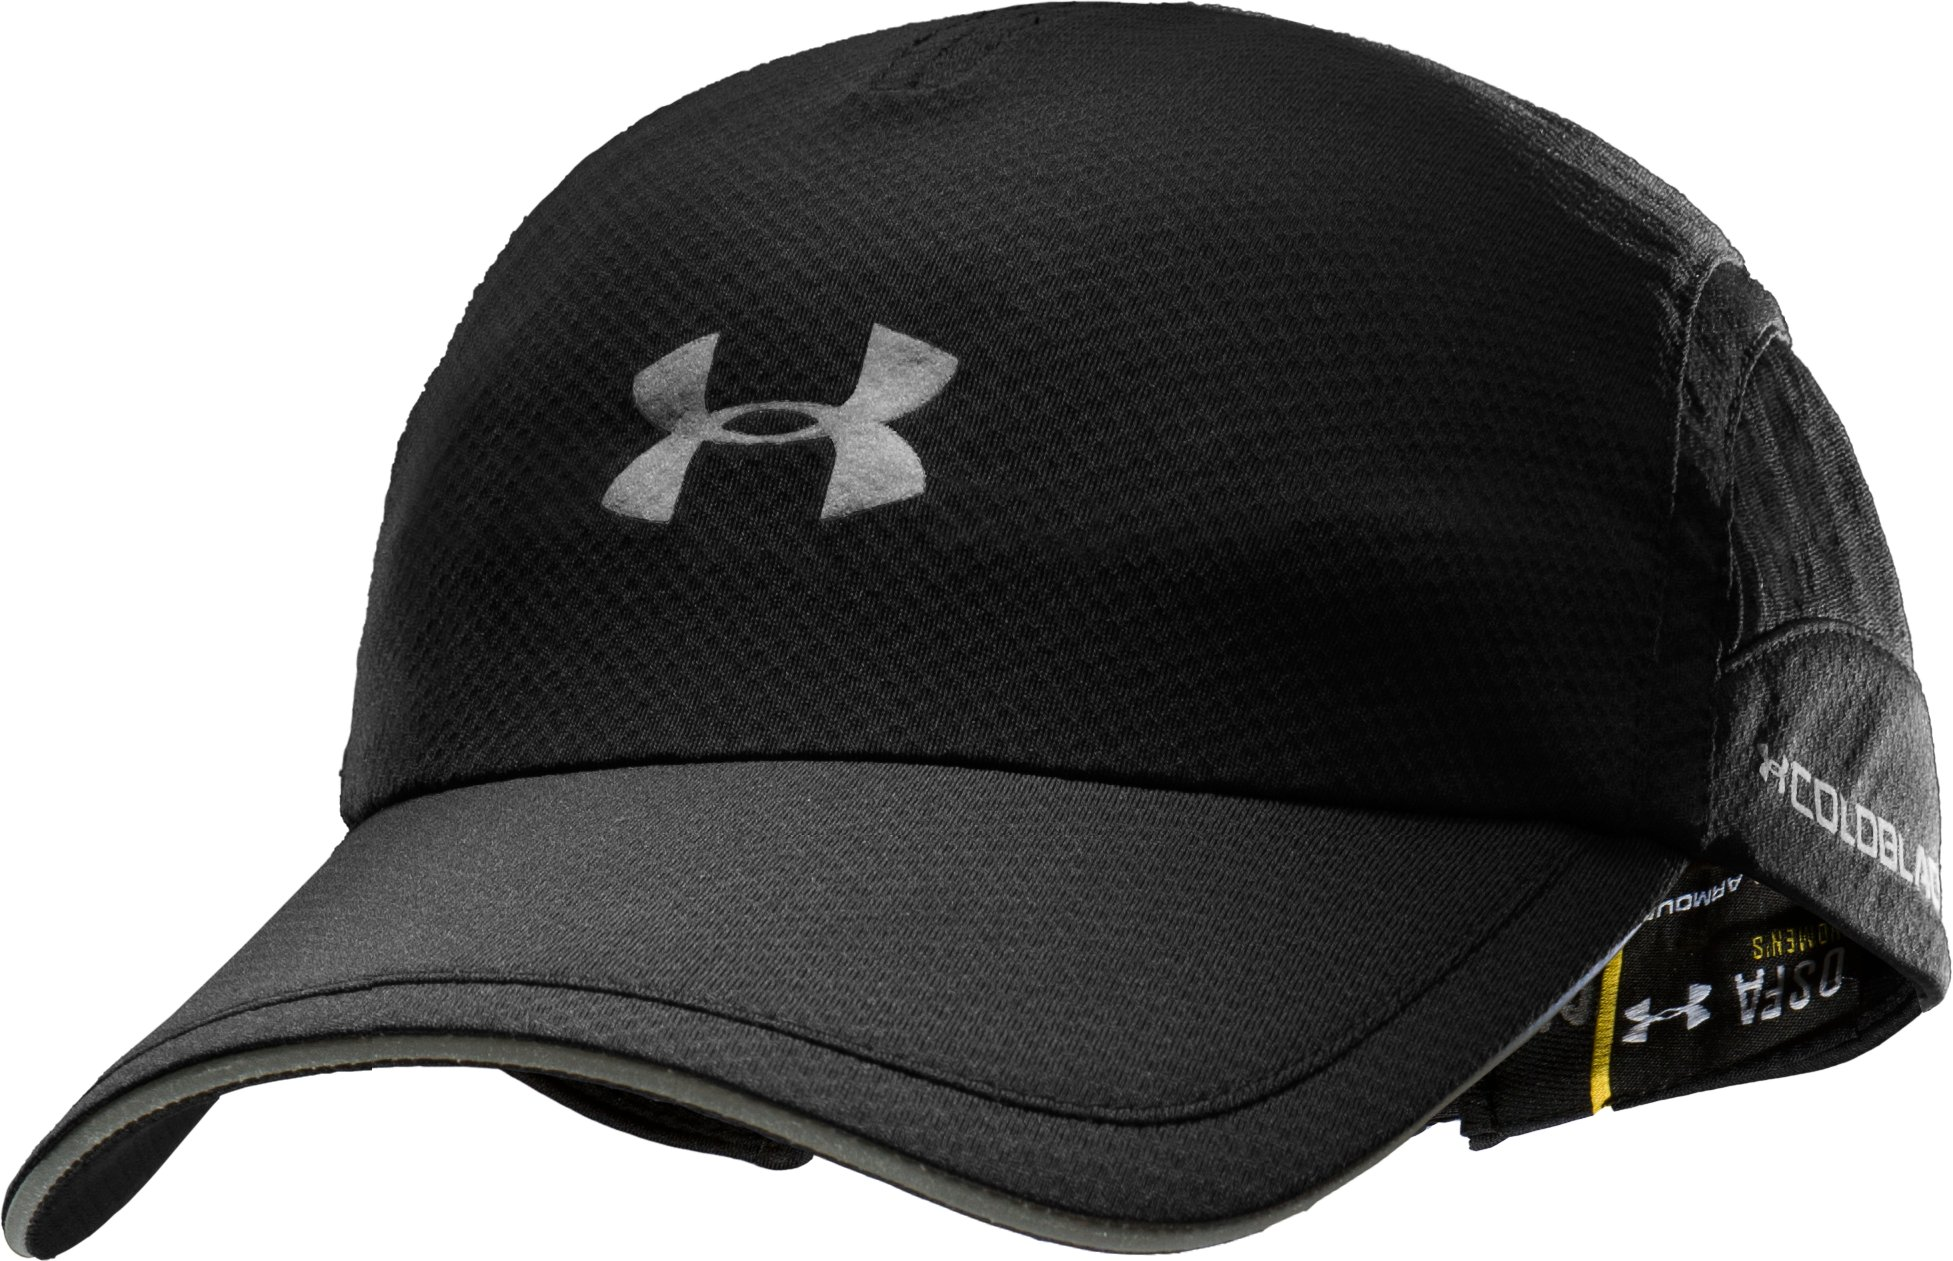 Men's coldblack® Adjustable Run Cap, Black